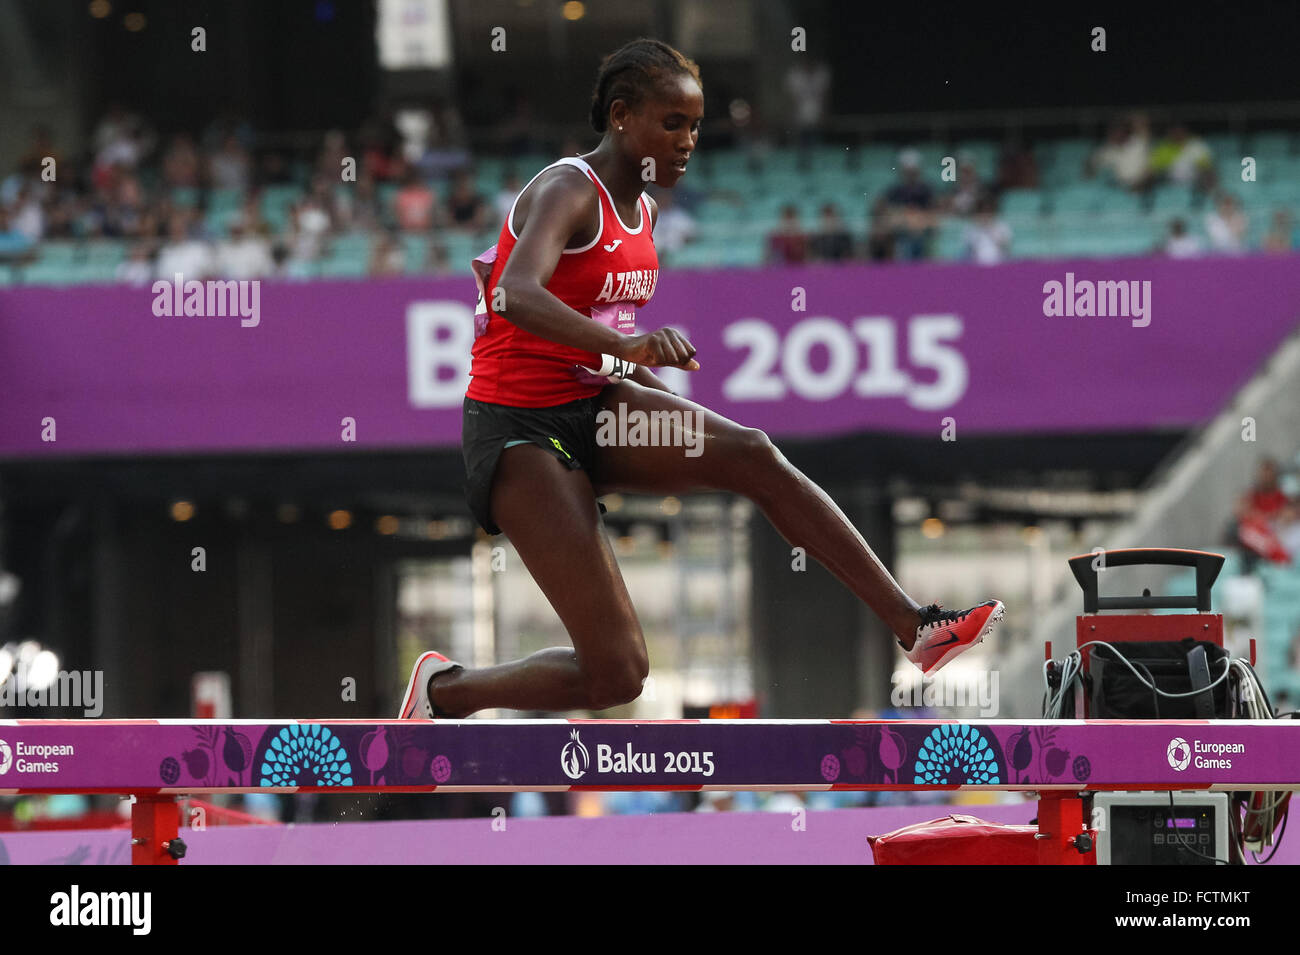 Chaltu Beji (AZE) on her way to victory during the Women's 3000m Steeplechase. Athletics. Olympic Stadium. Baku2015. Stock Photo